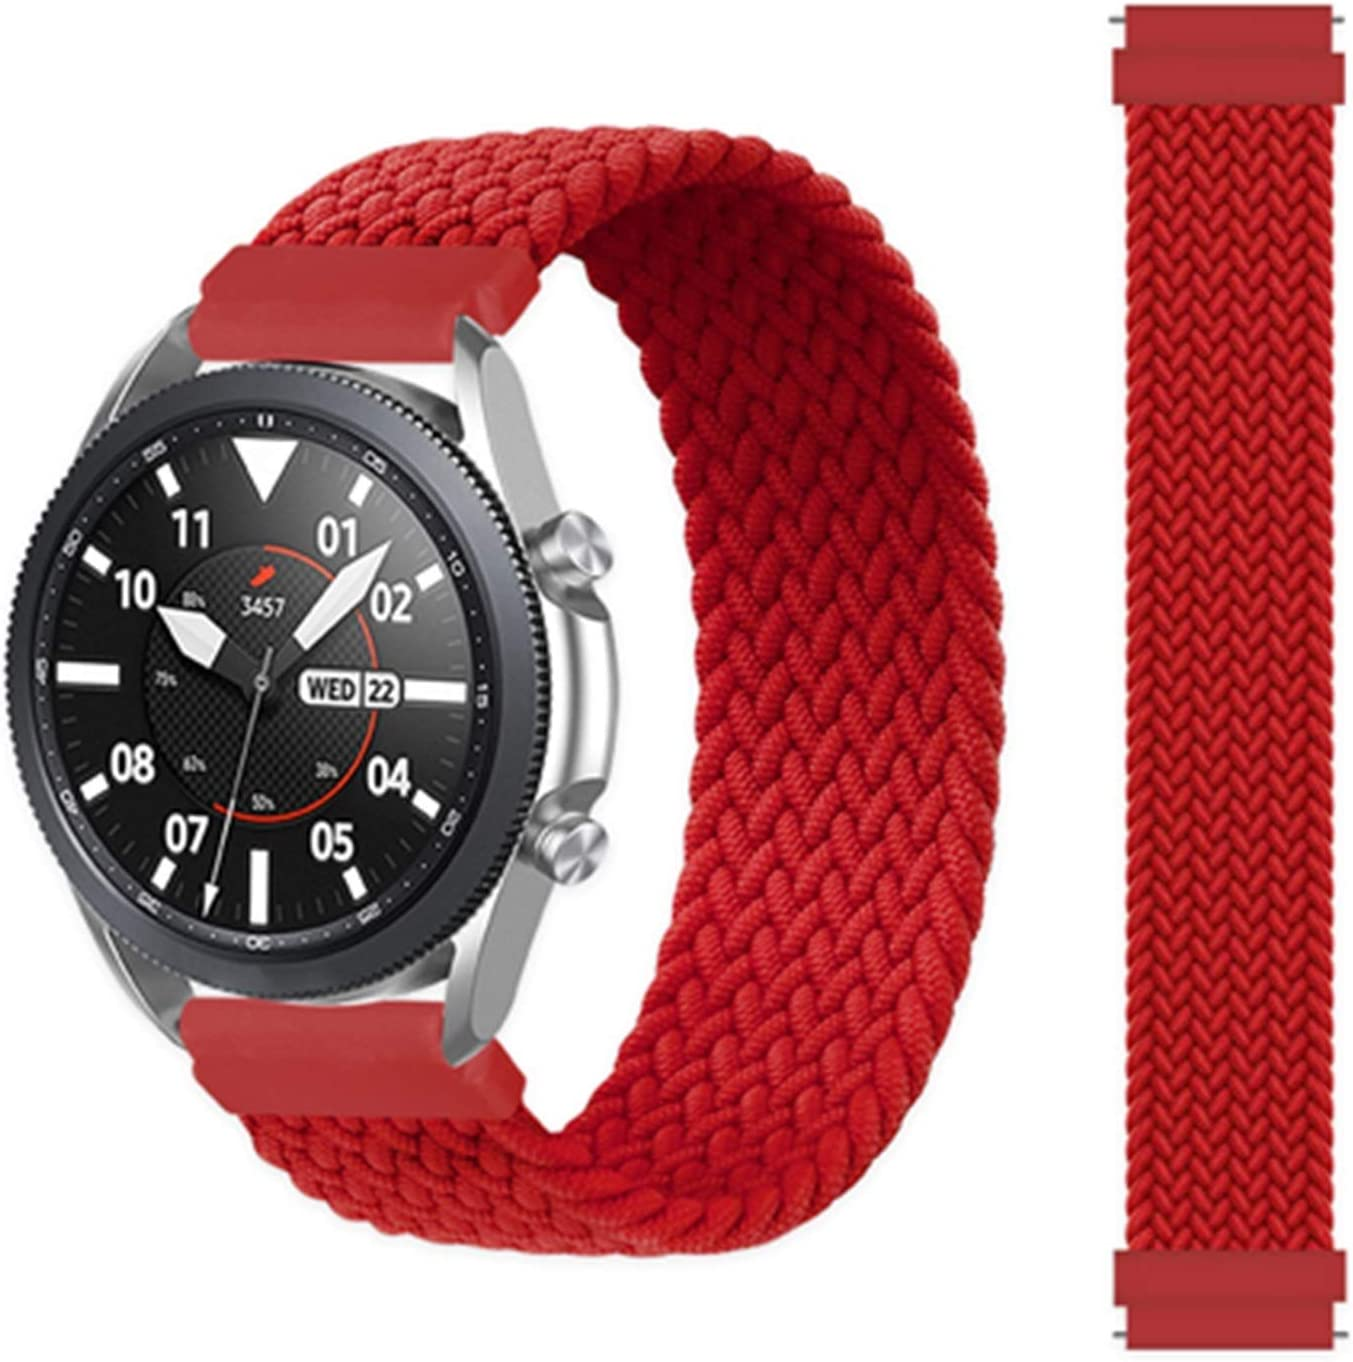 DFKai1run Nylon Strap San Diego Mall 22mm 20mm Watch Lowest price challenge for 46mm Band